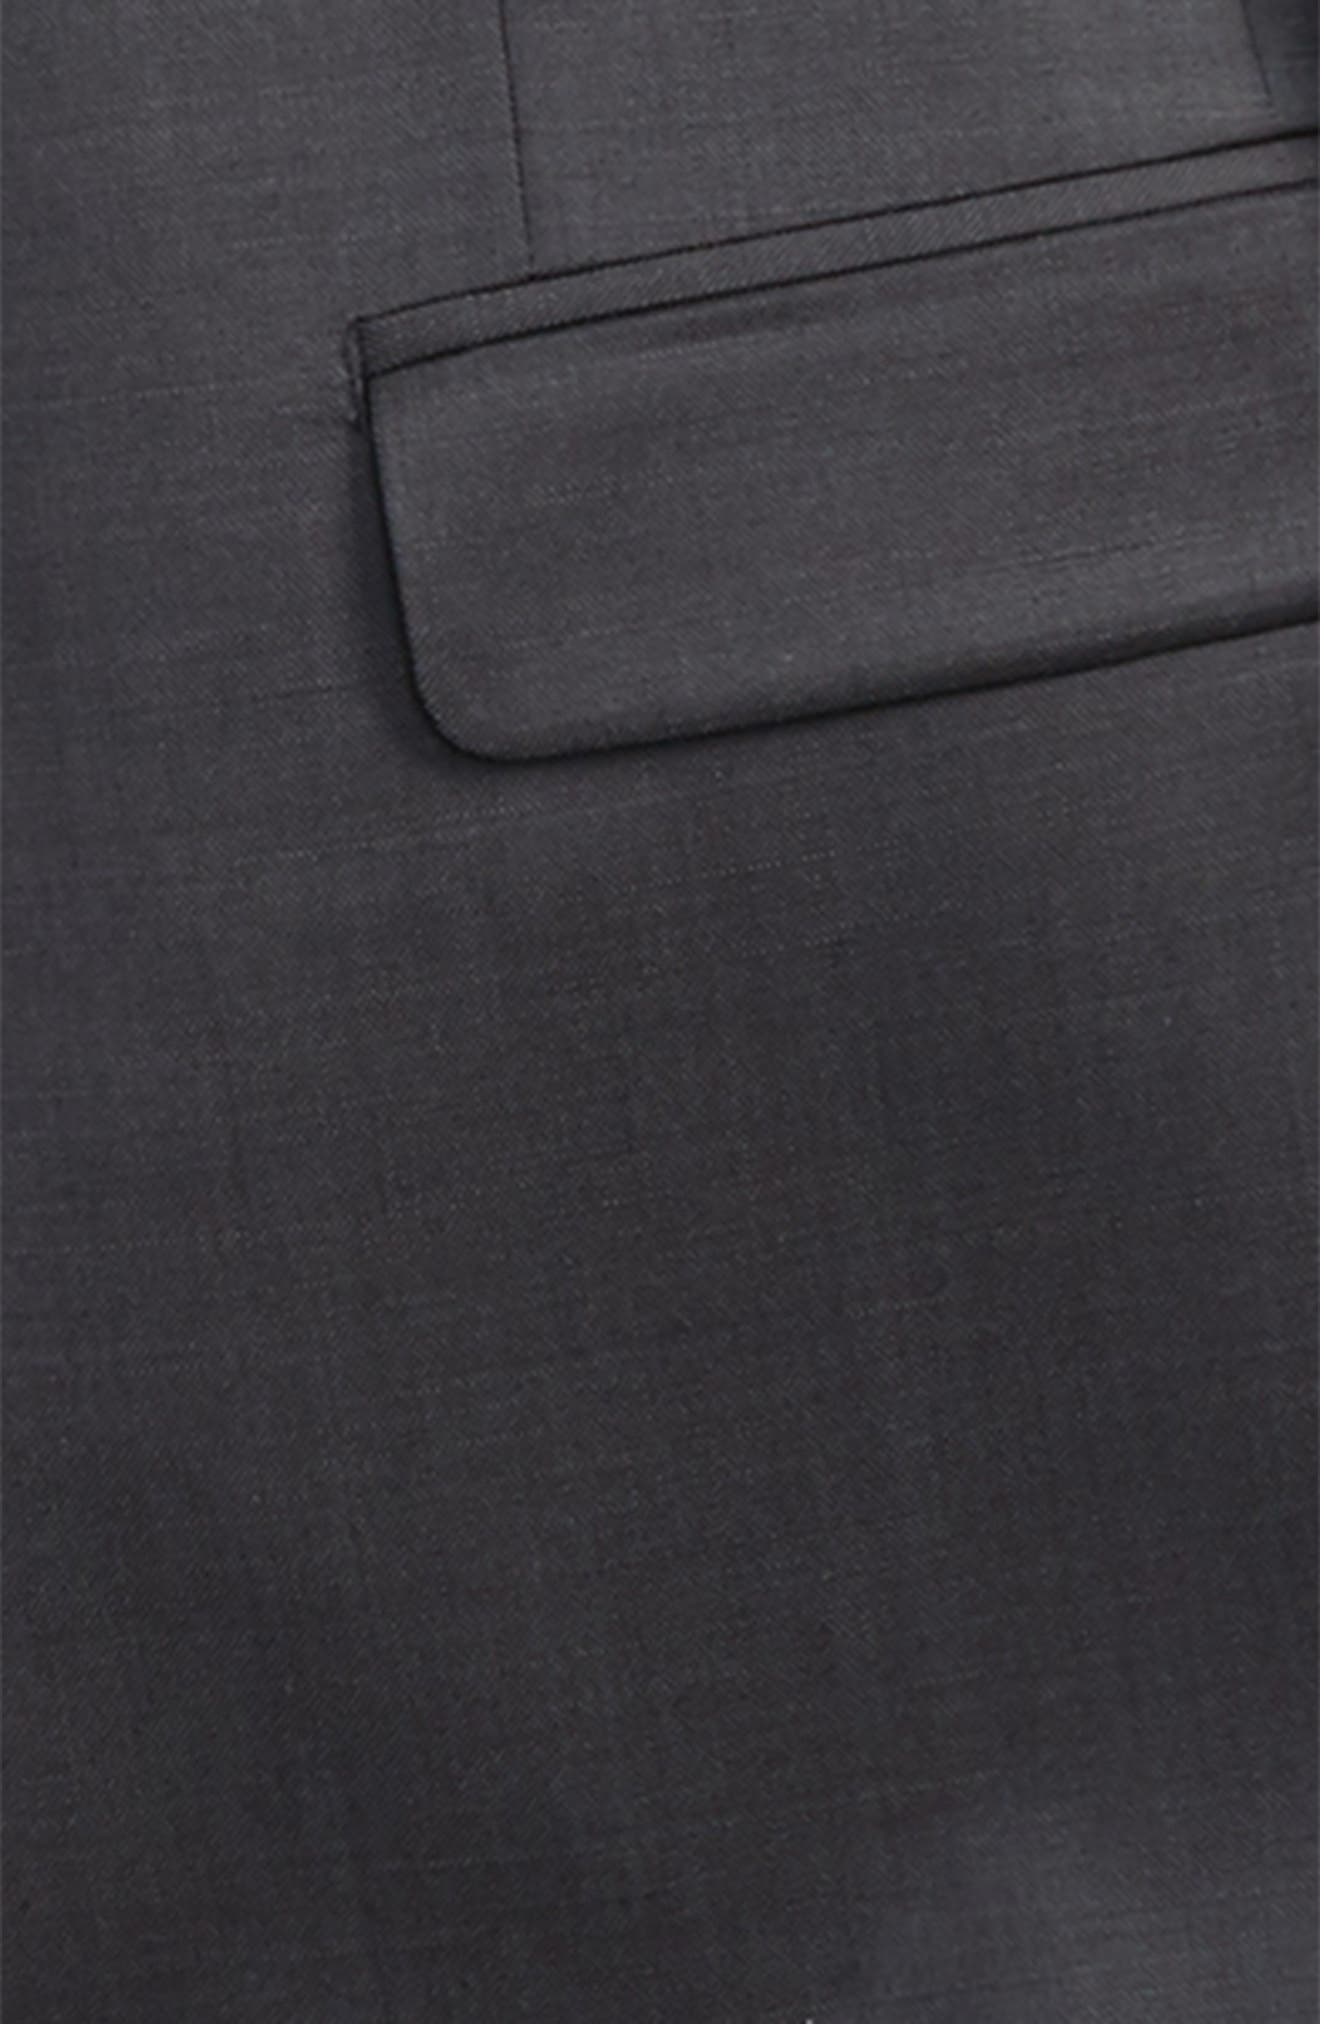 Worsted Wool Suit,                             Alternate thumbnail 2, color,                             060